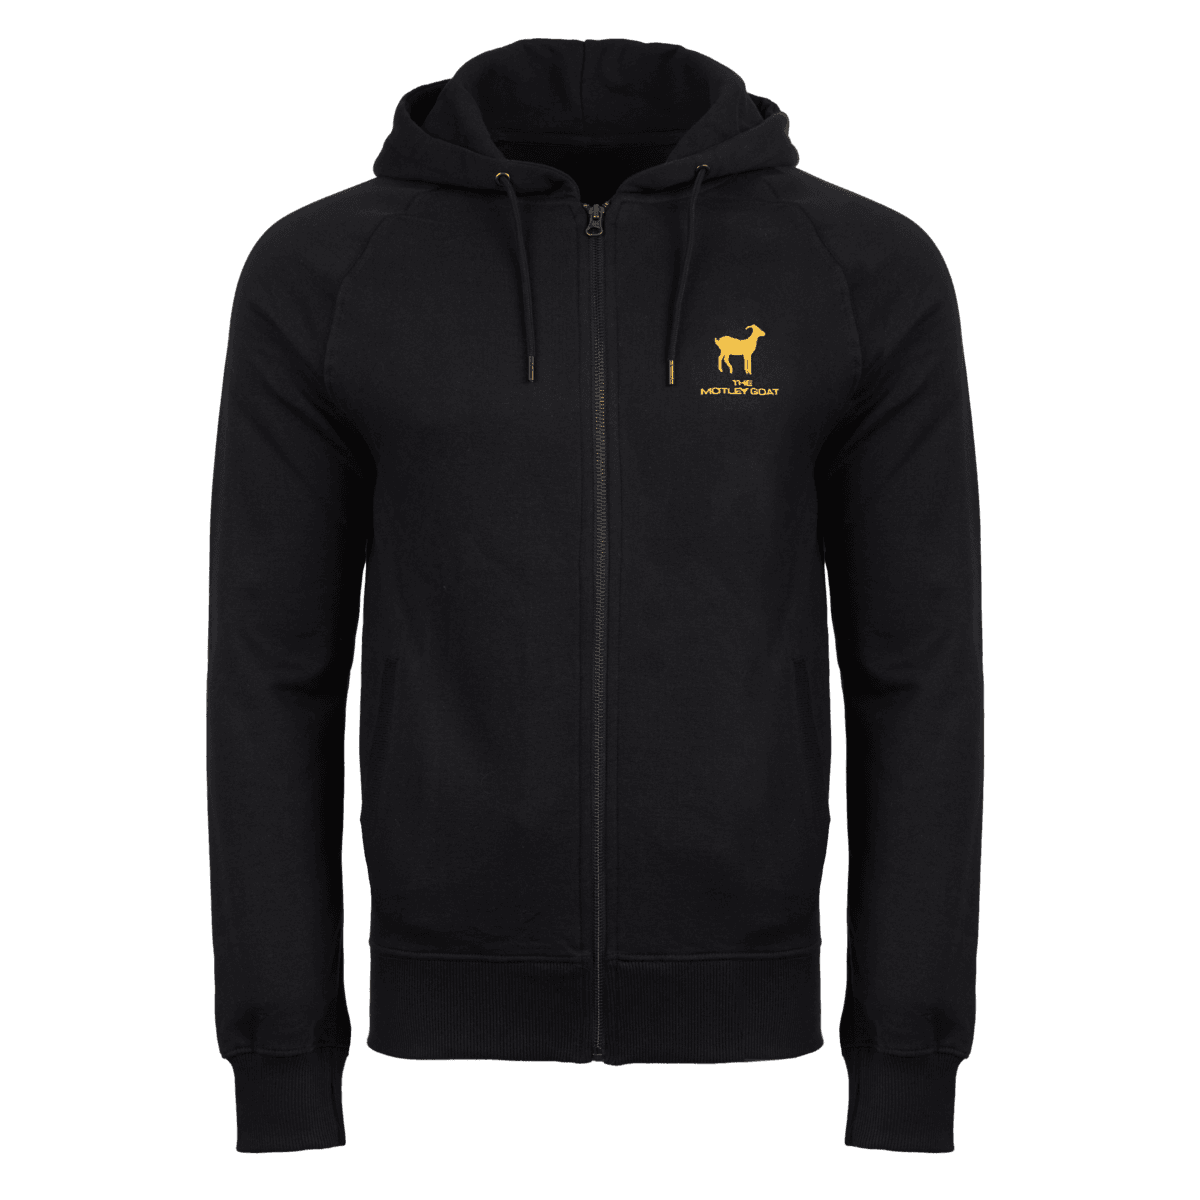 Women's Zip-Up Hoodie